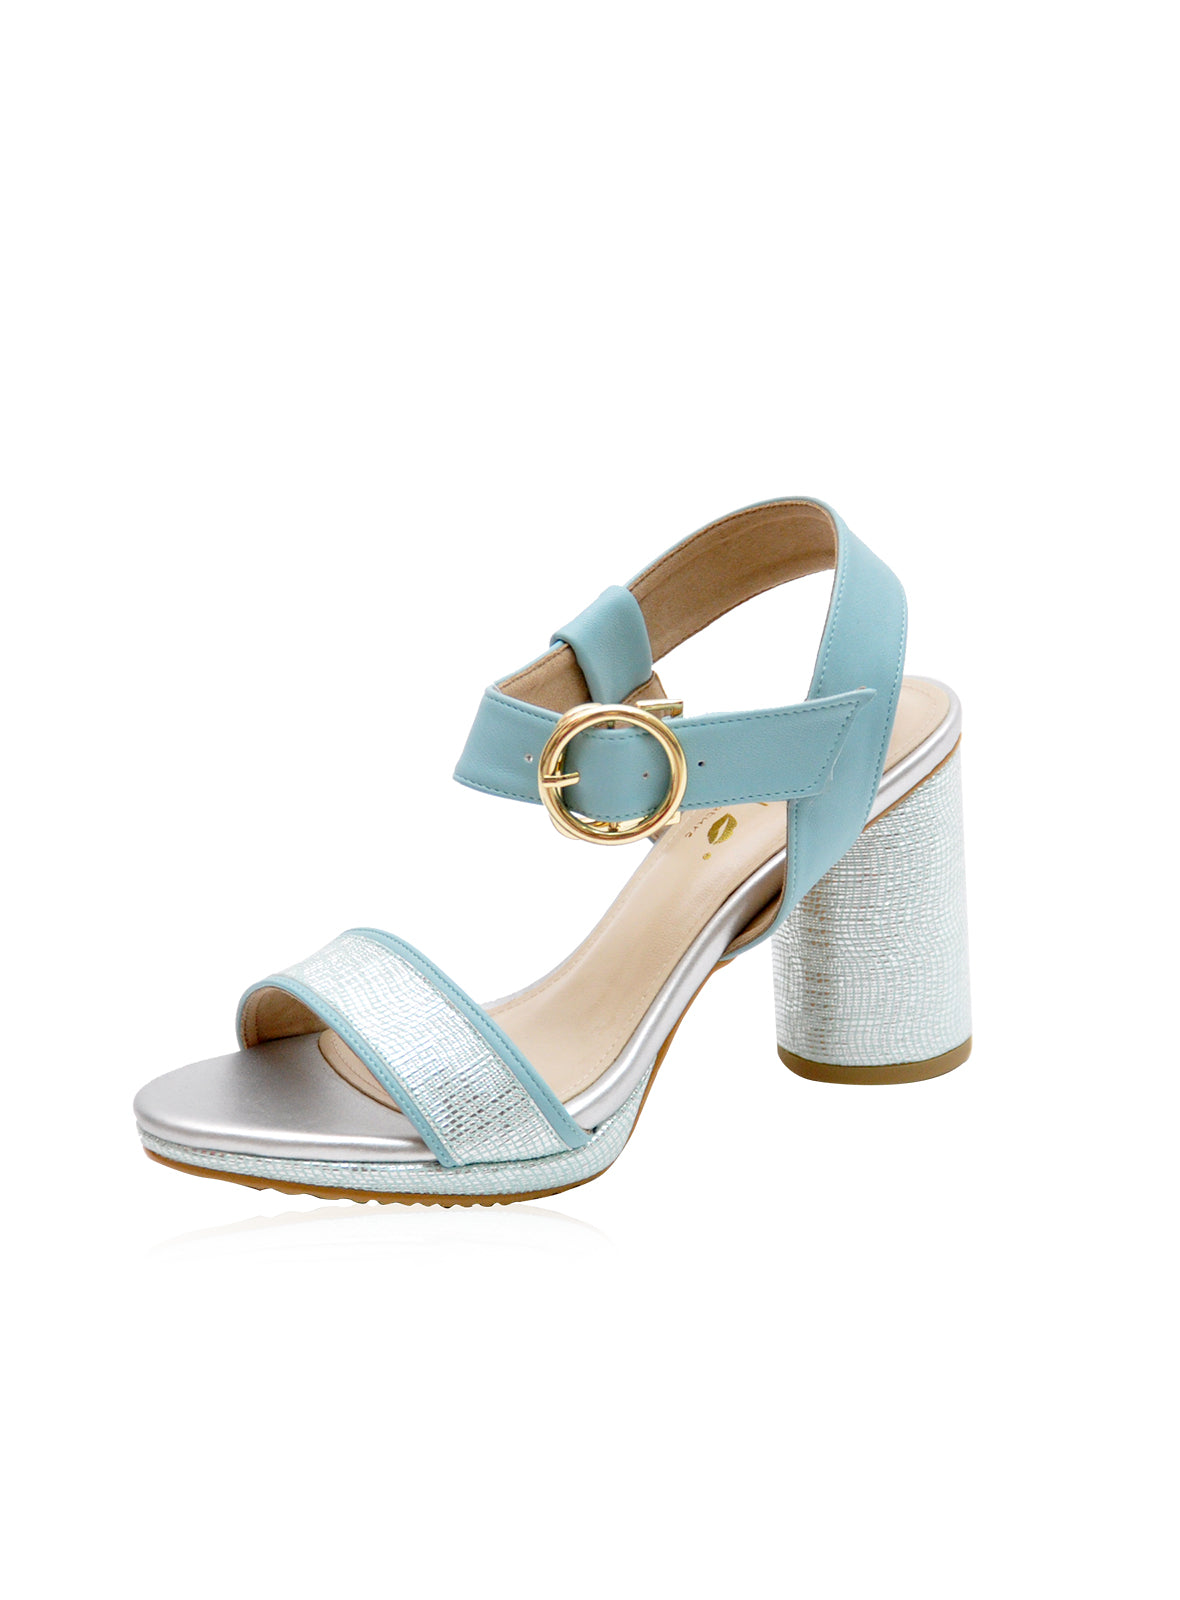 Lena Heels in Baby Blue